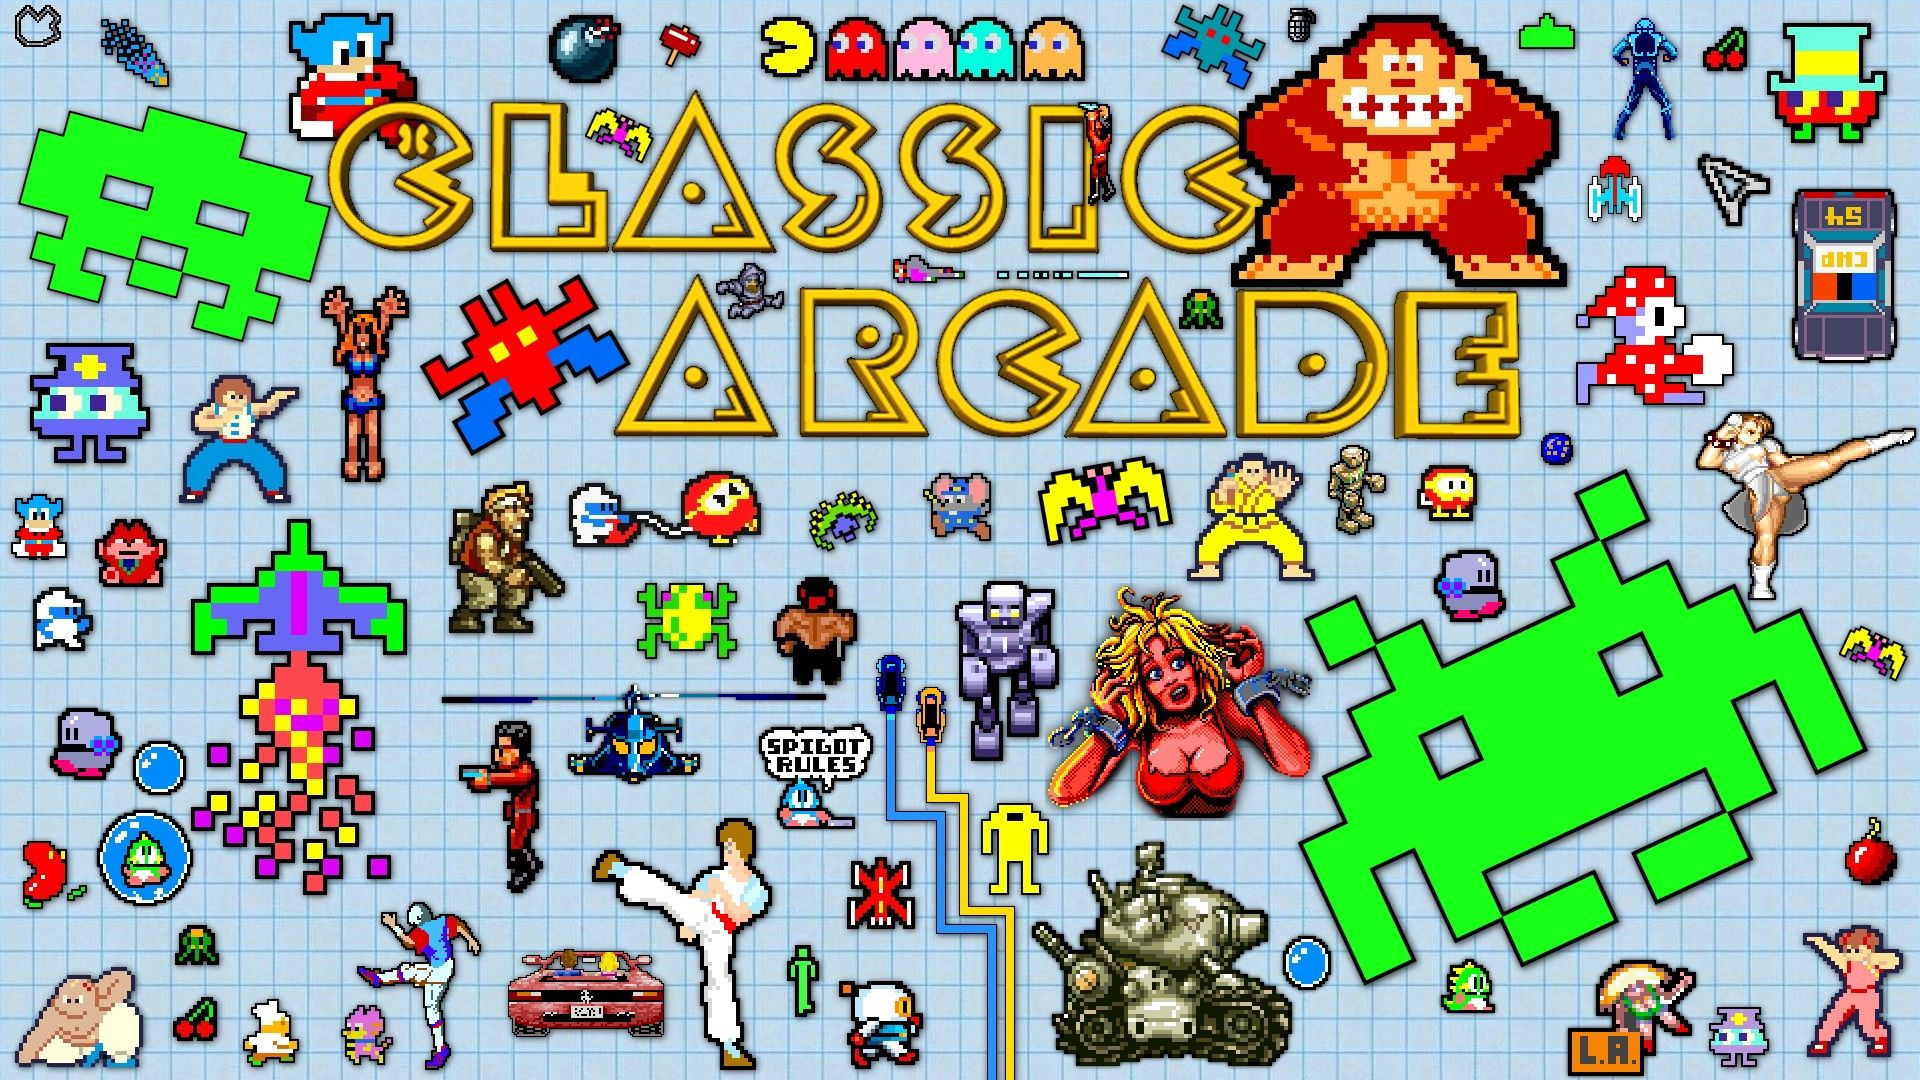 Arcade Wallpaper Decided To 1080 Fie My Arcade Classic Wallpaper